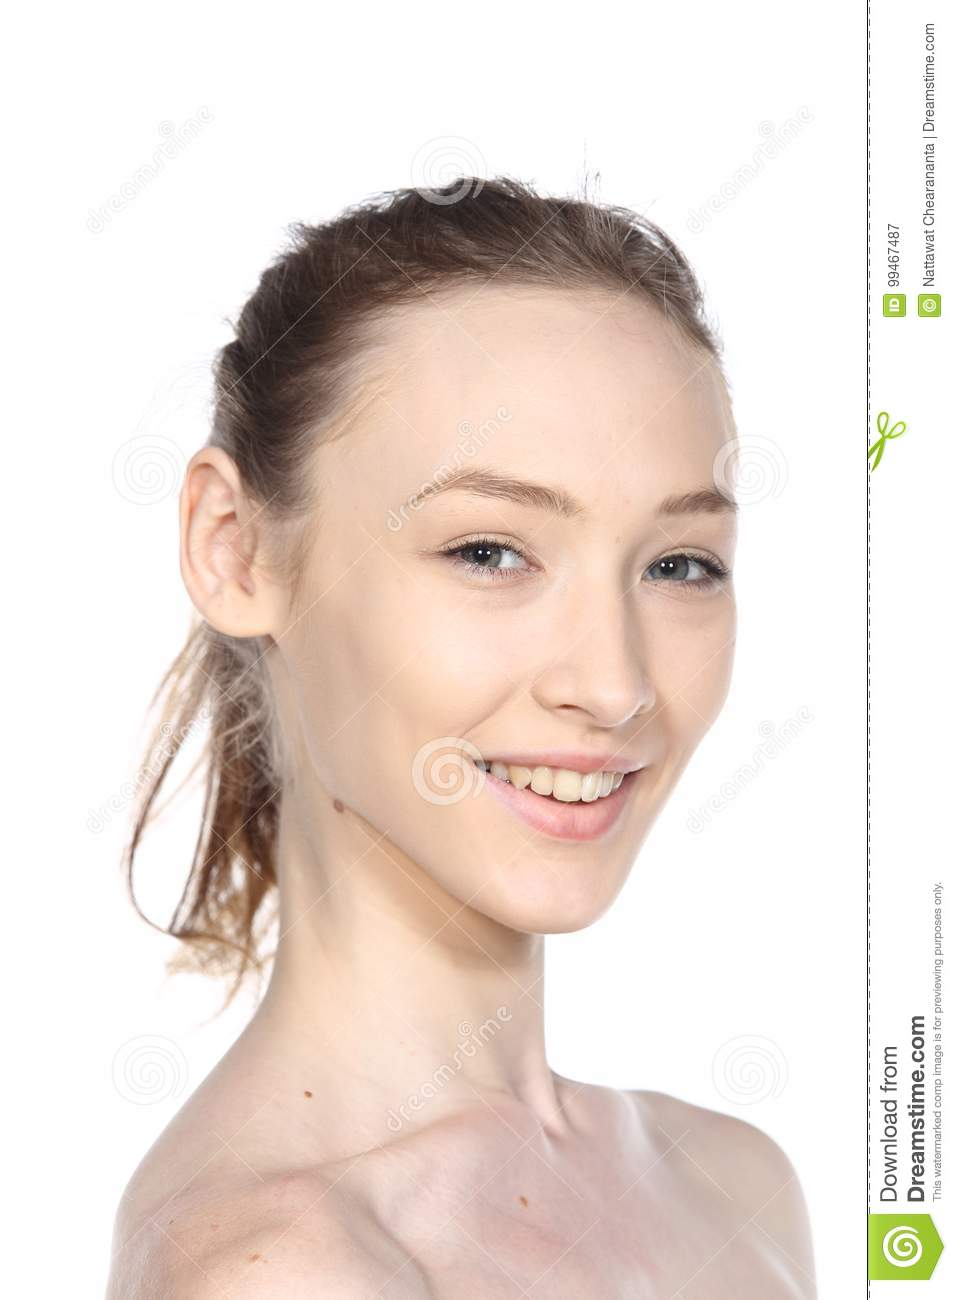 Caucasian Woman Before Make Up Hair Style  No Retouch, Fresh